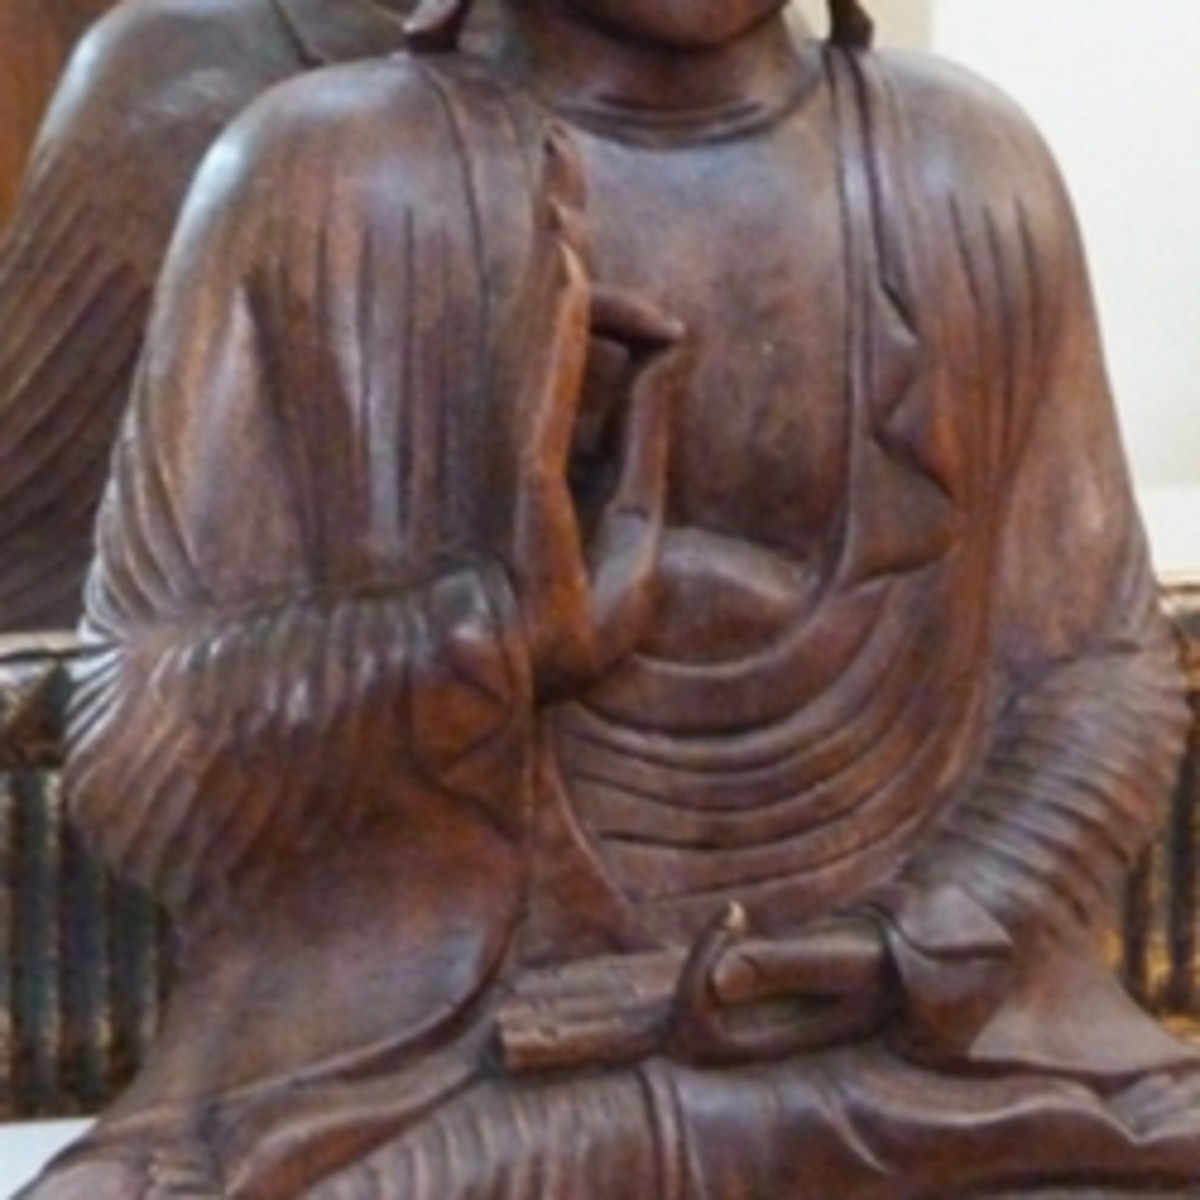 buddha-hand-gestures-or-mudras-and-meaning